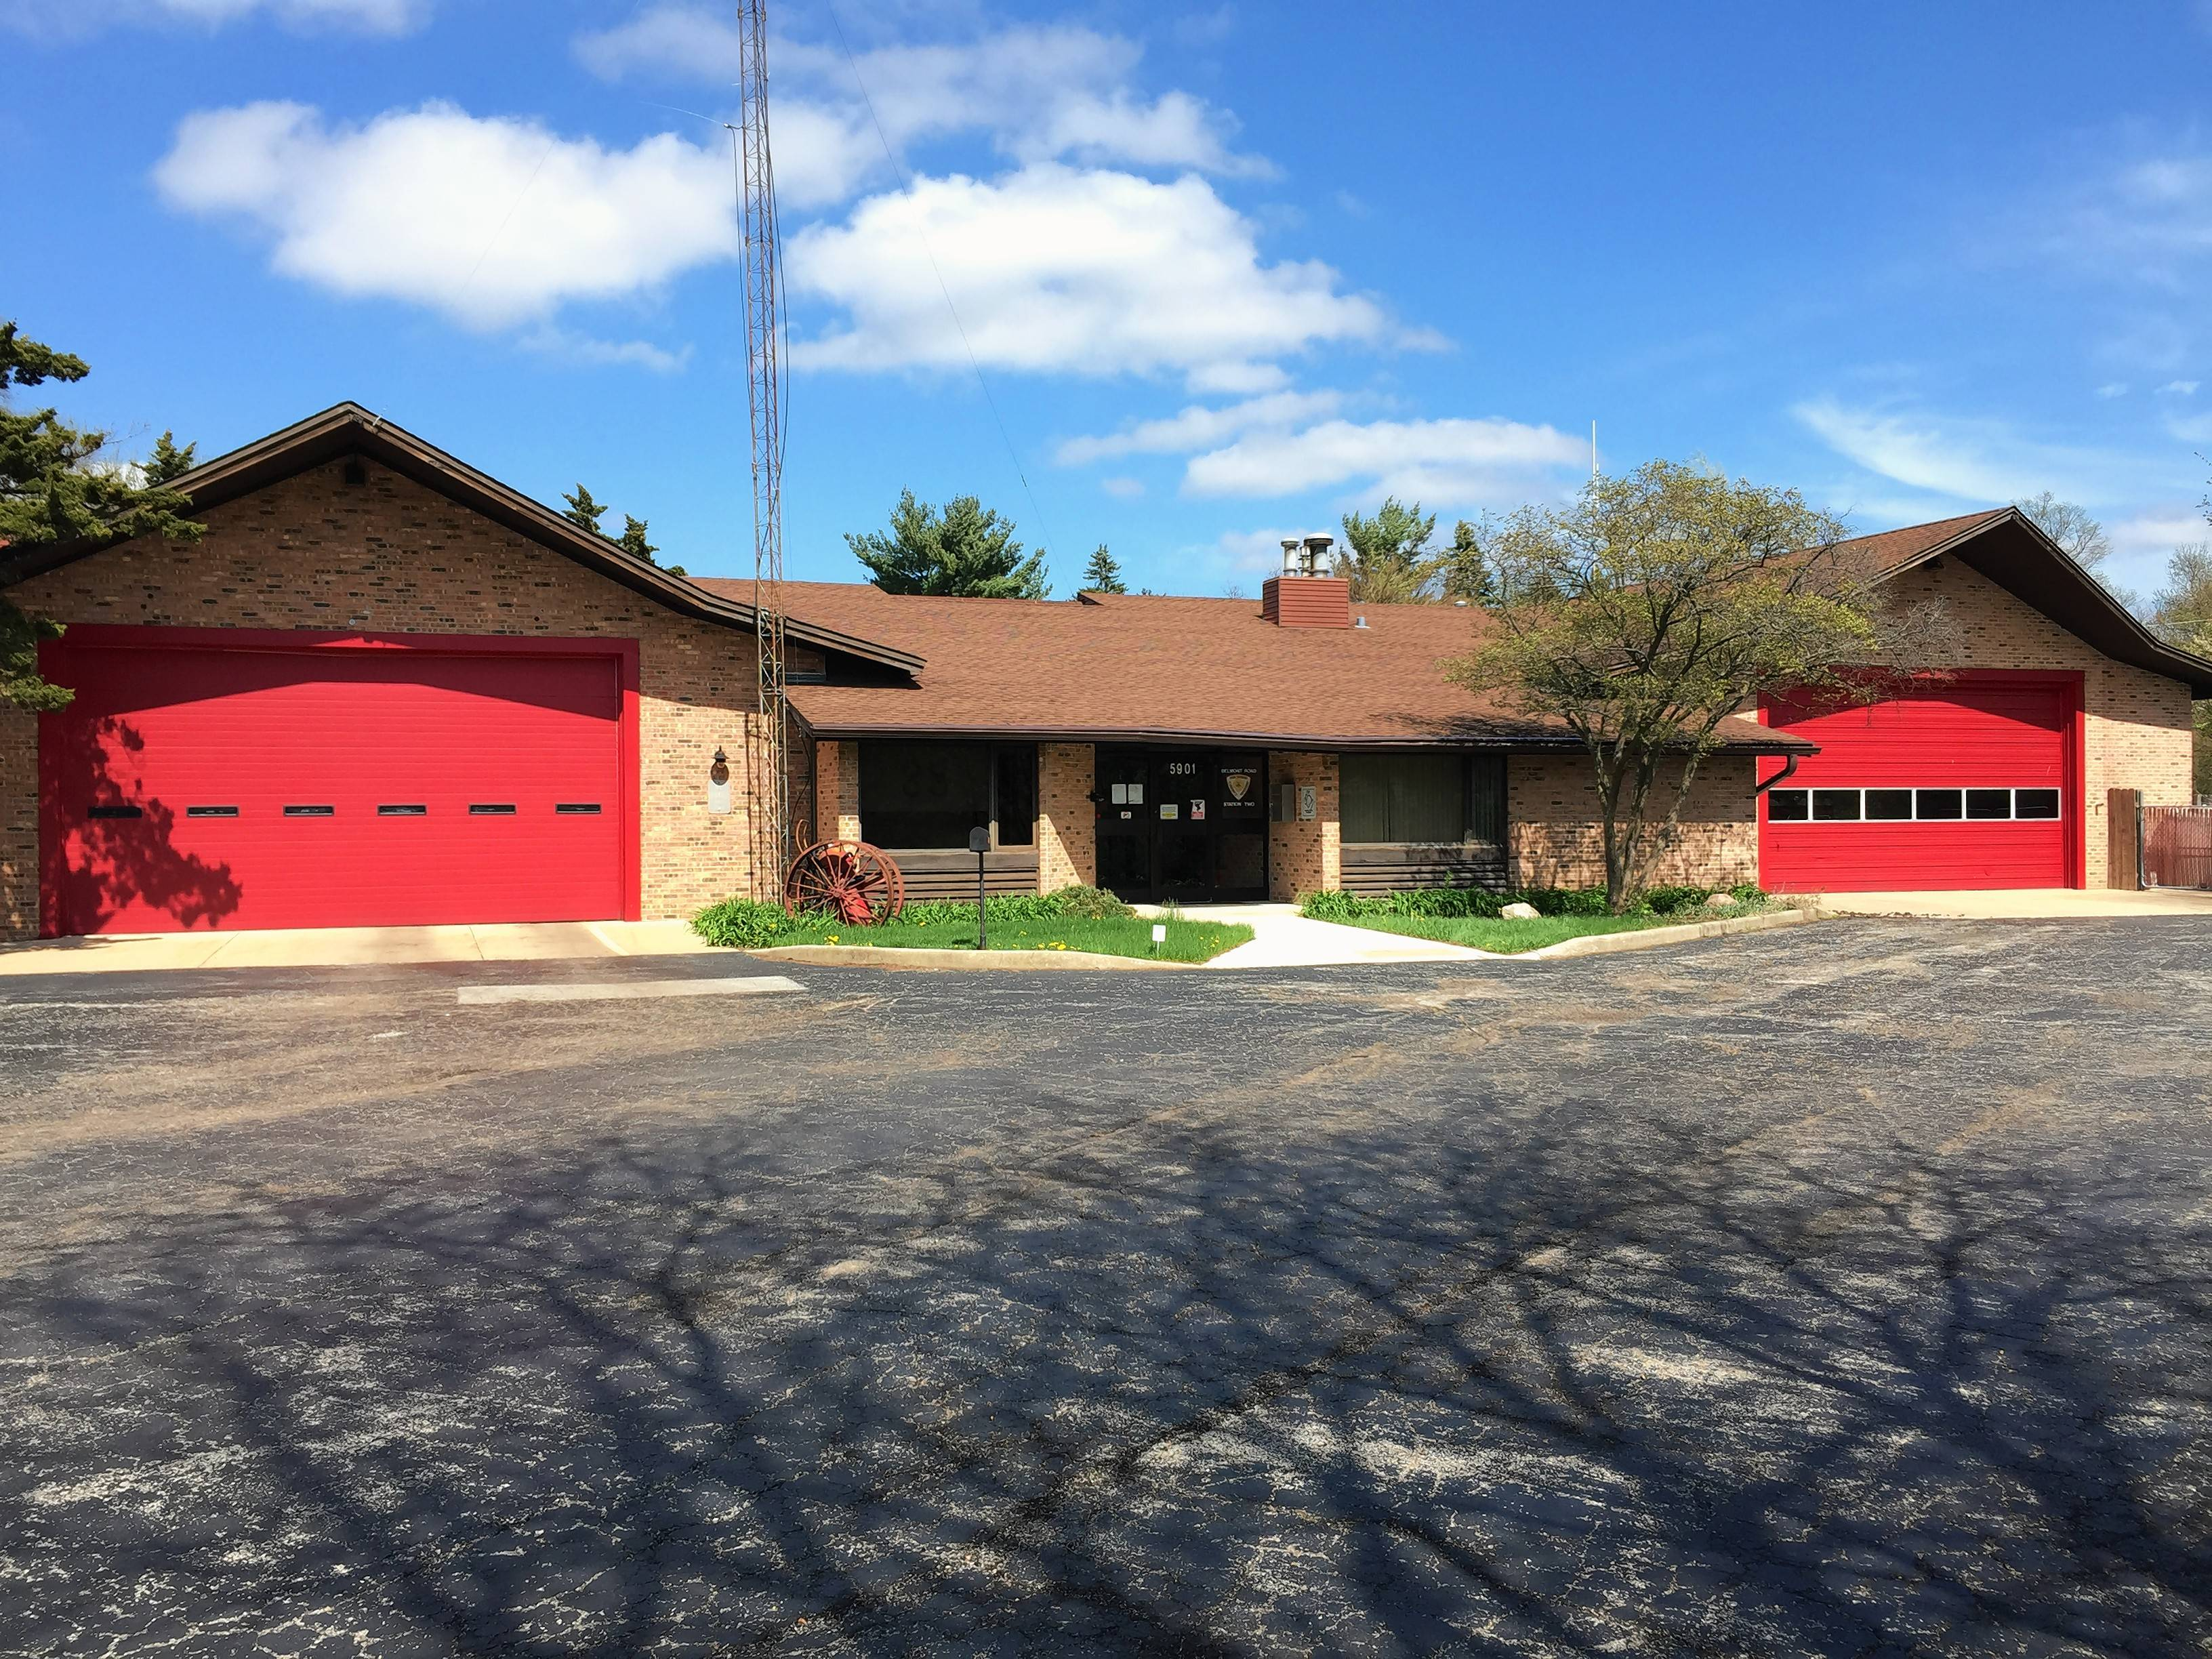 The Darien-Woodridge Fire Protection District is planning to close its fire station at Belmont Road and 59th Street and move the staff to increase the number of firefighters assigned to its vehicles.